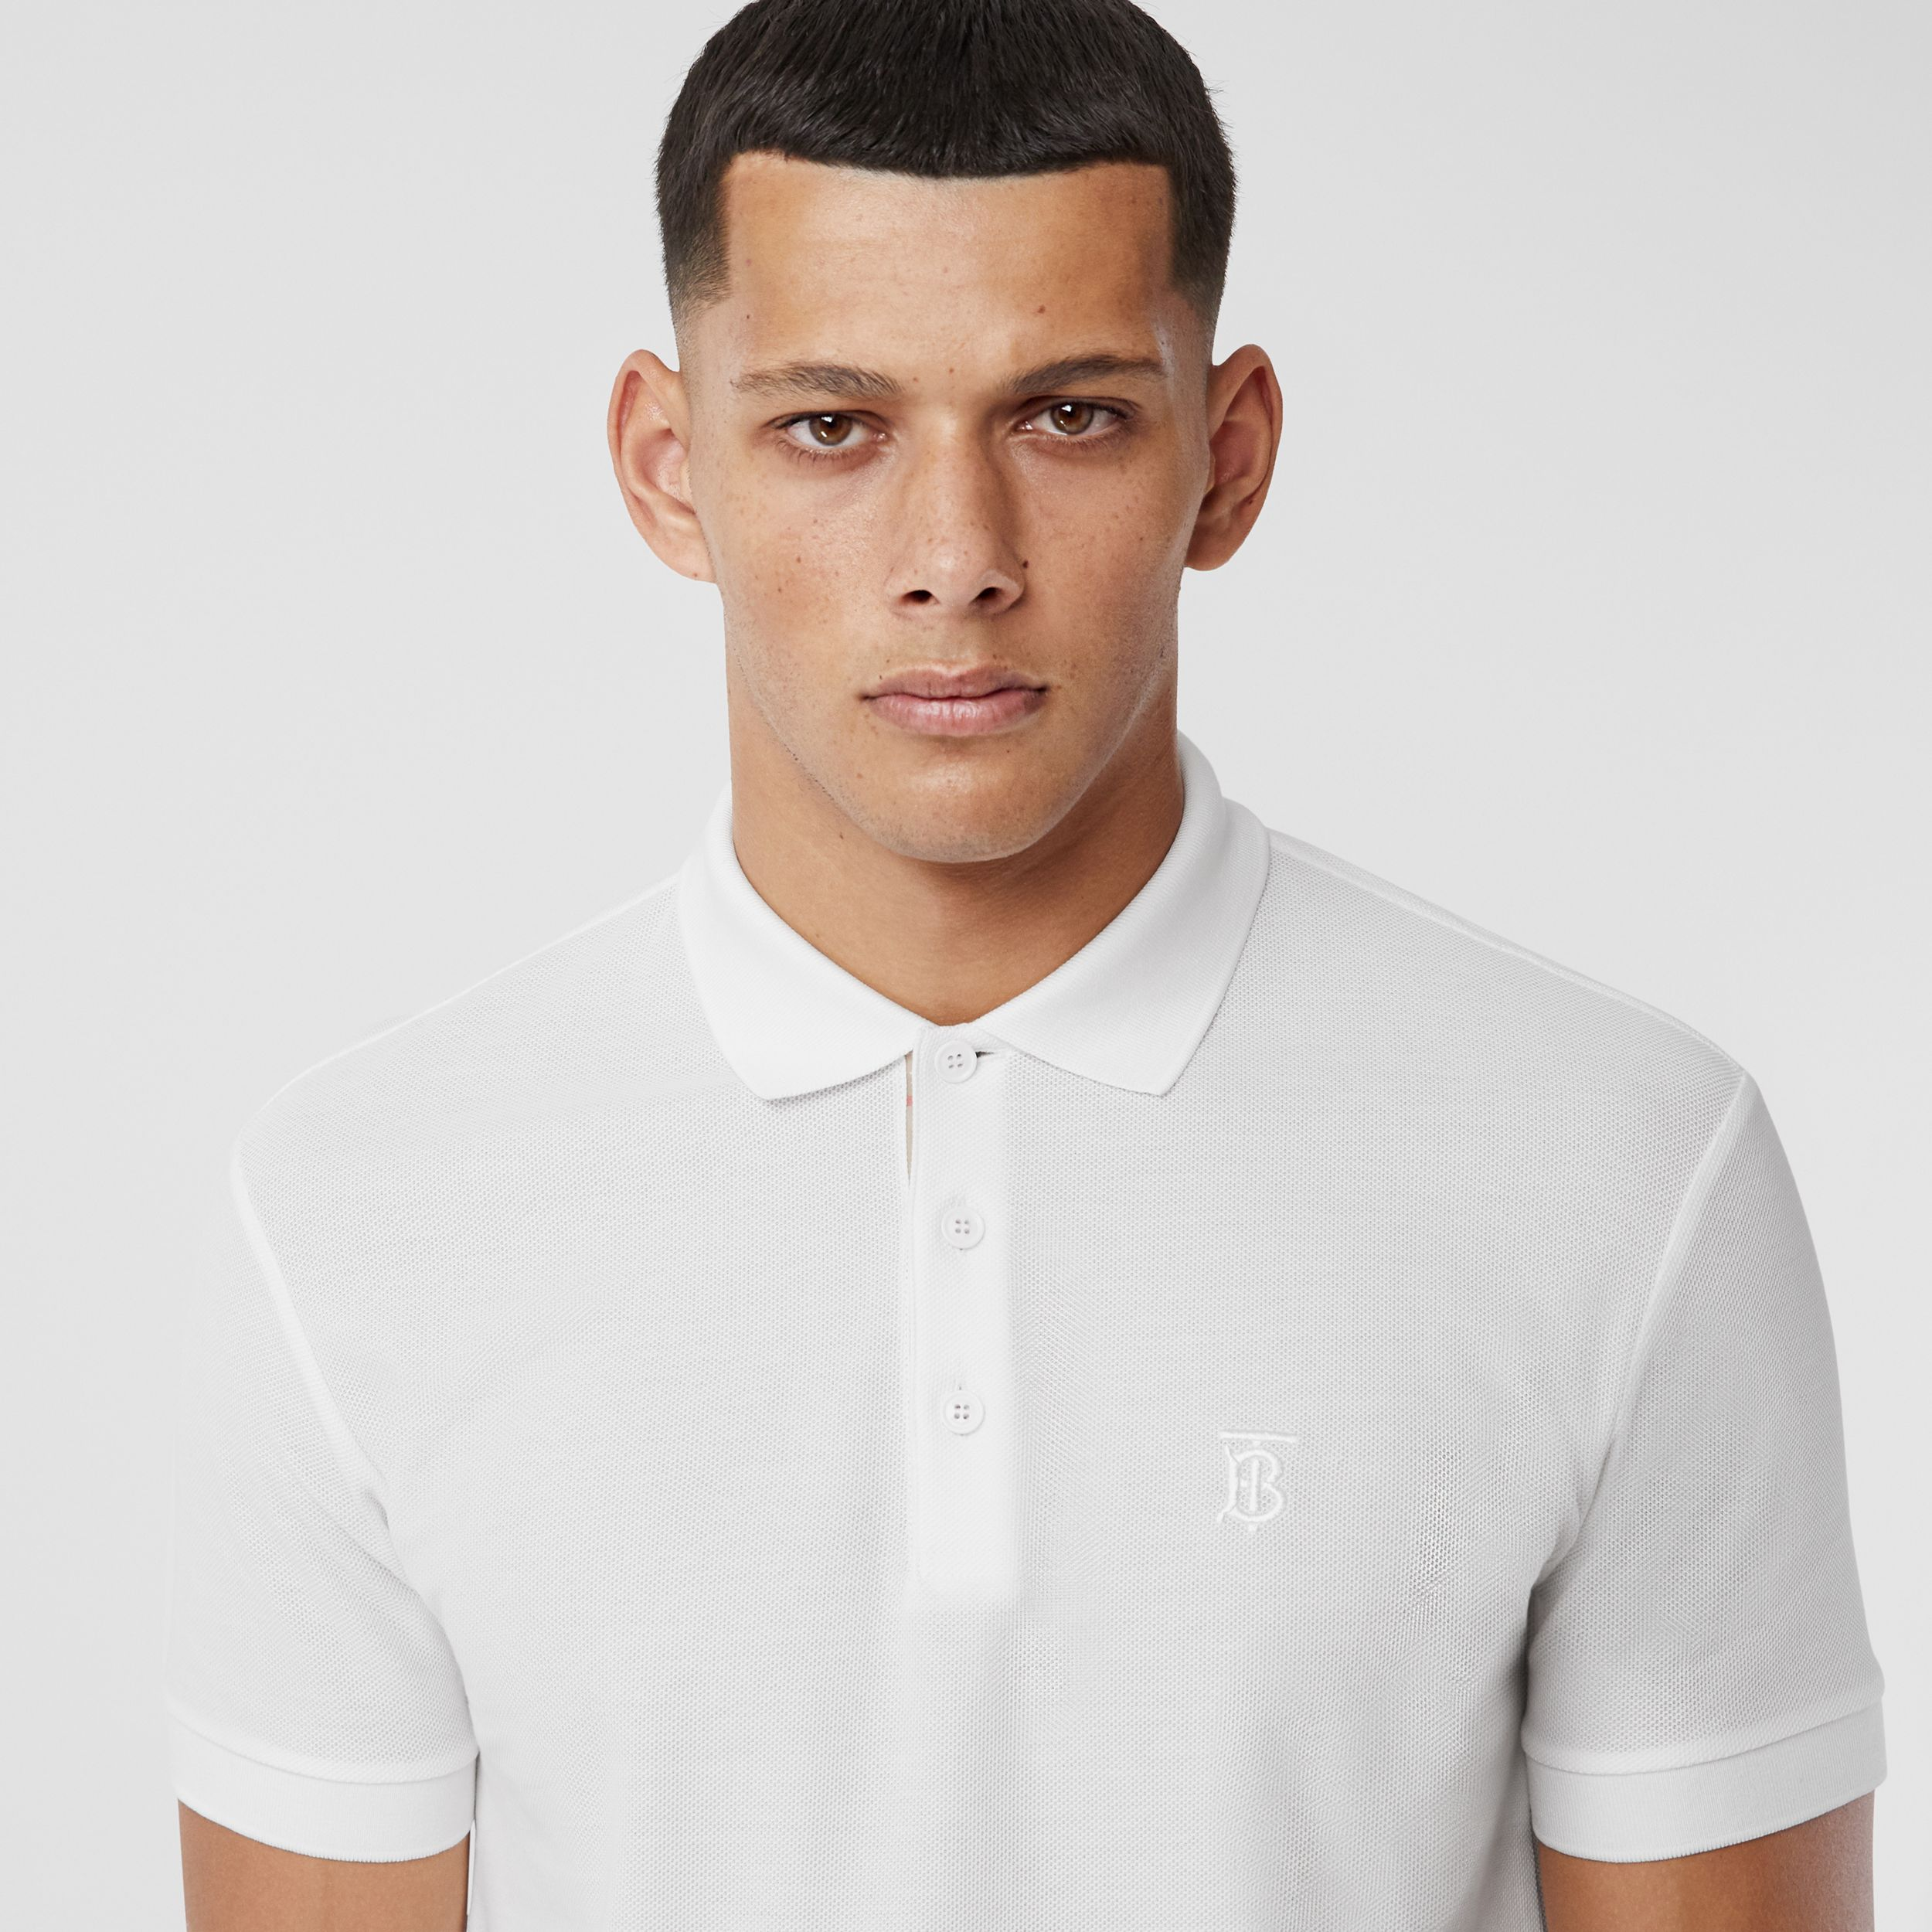 Monogram Motif Cotton Piqué Polo Shirt in White - Men | Burberry United Kingdom - 2